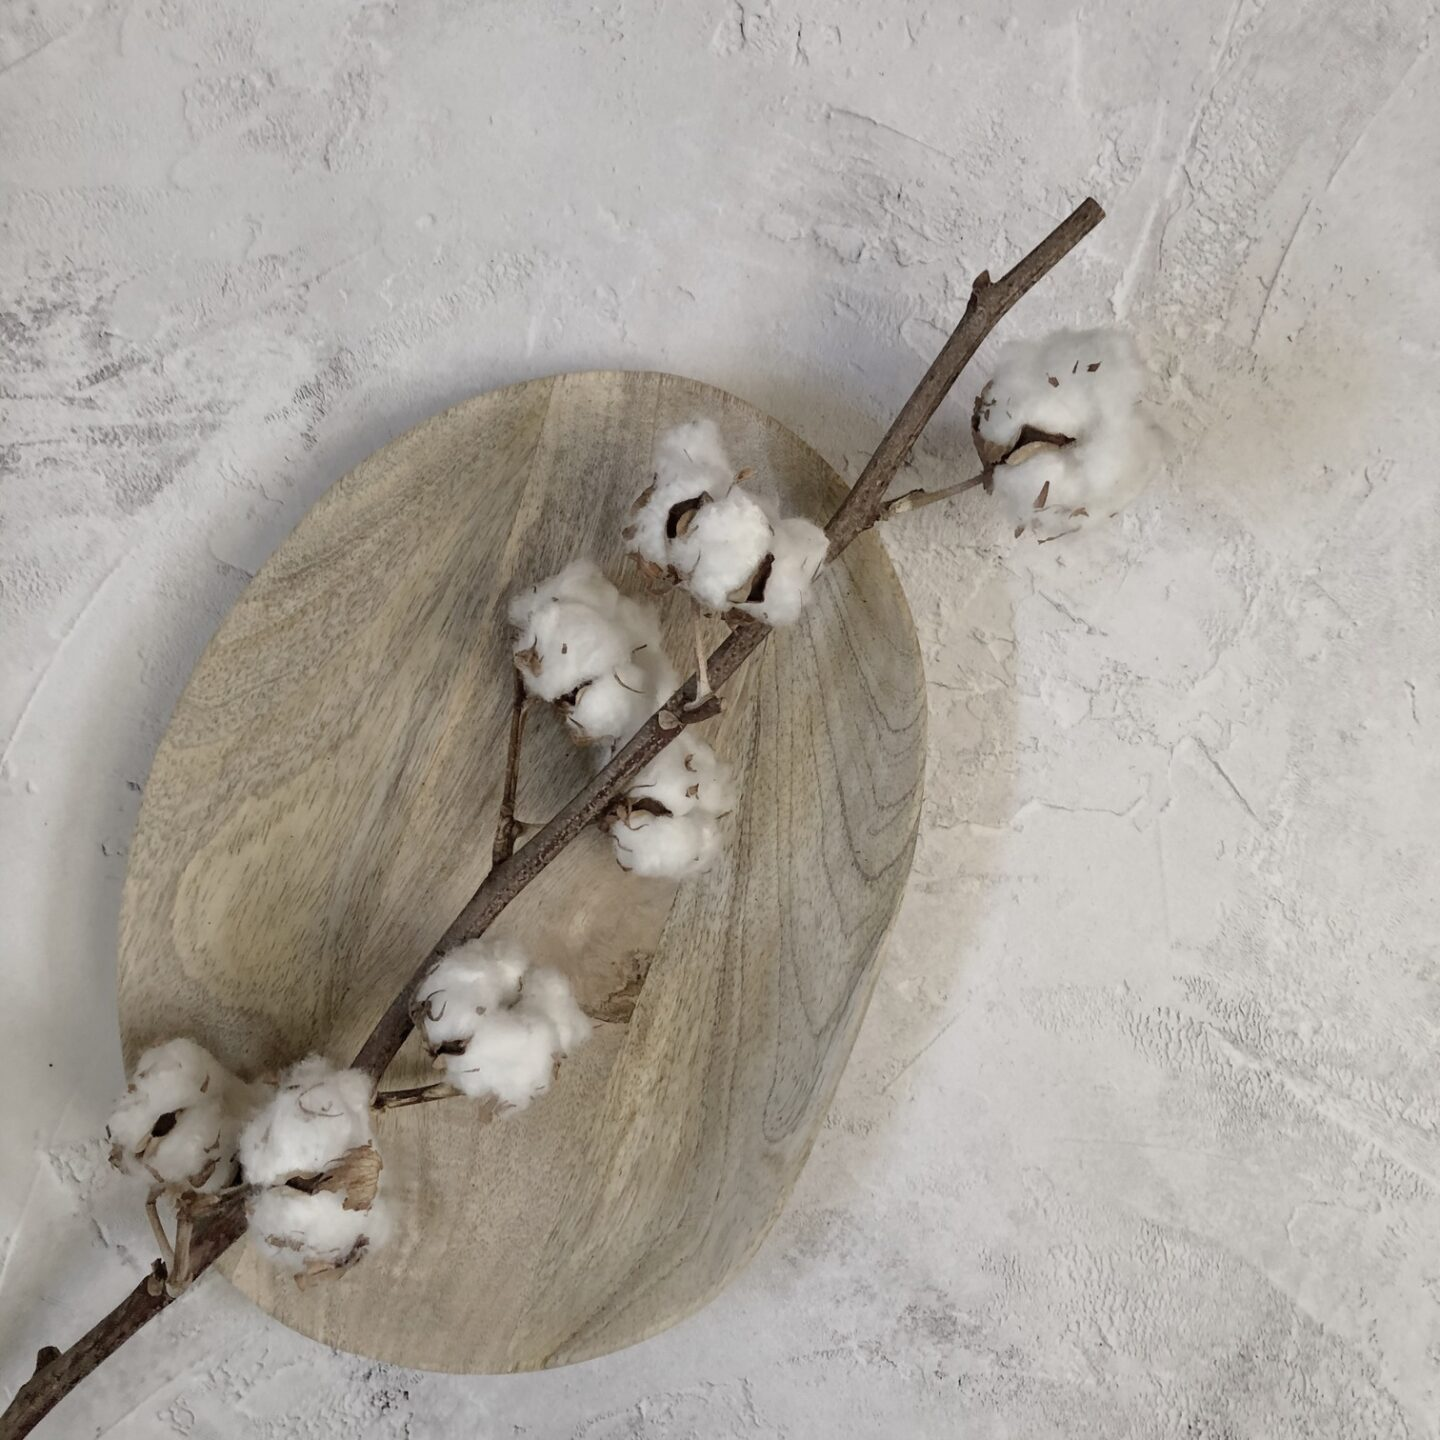 Cotton flowers on a wooden tray